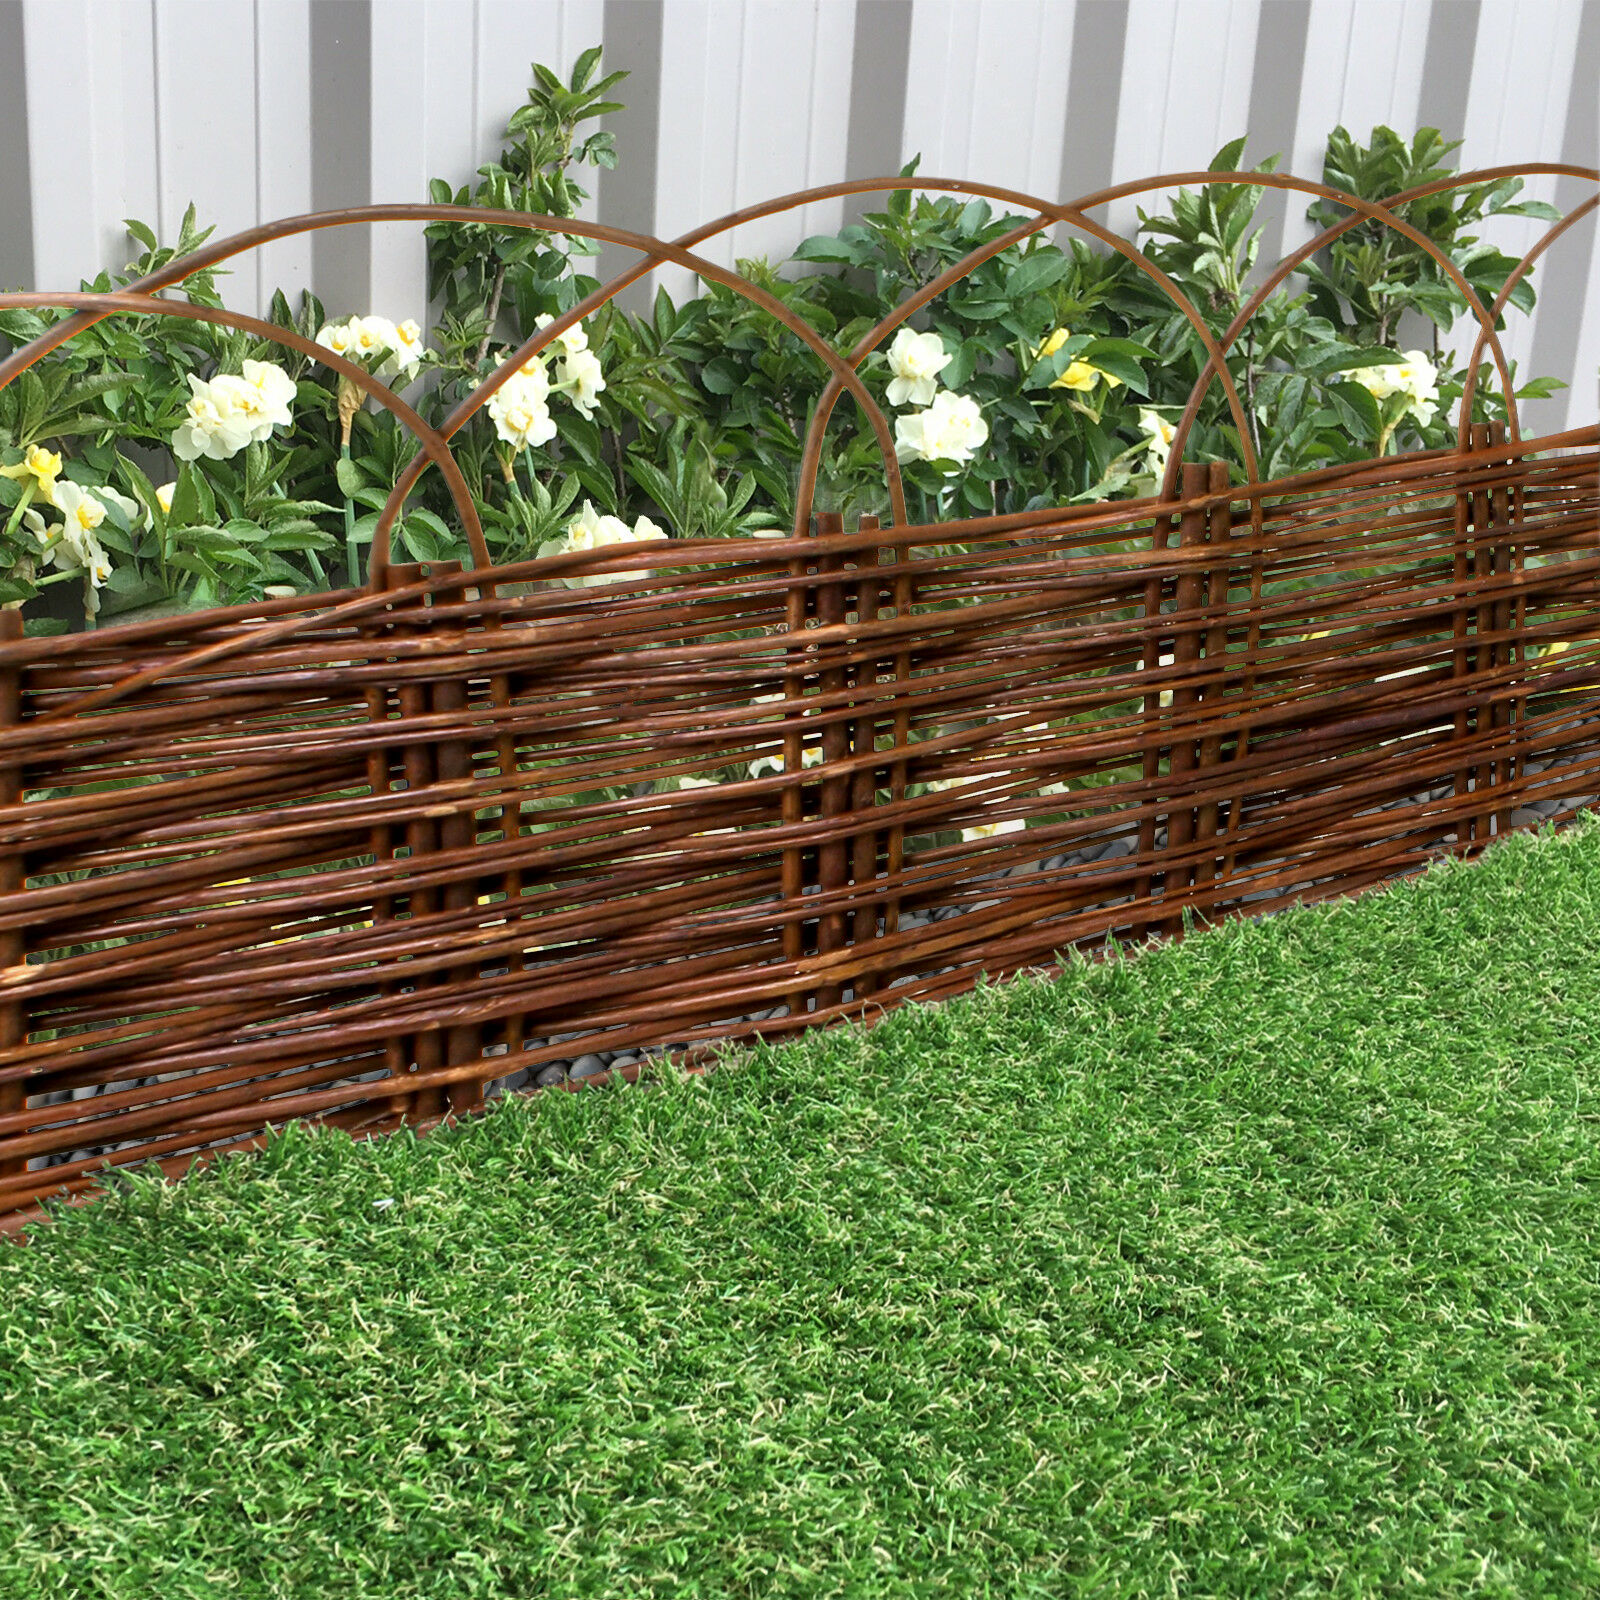 Garden Willow Lawn Edging 1M Arched Panel Flower Bed Border Hurdle Pathway  Drive 1 Of 2Only 0 Available ...